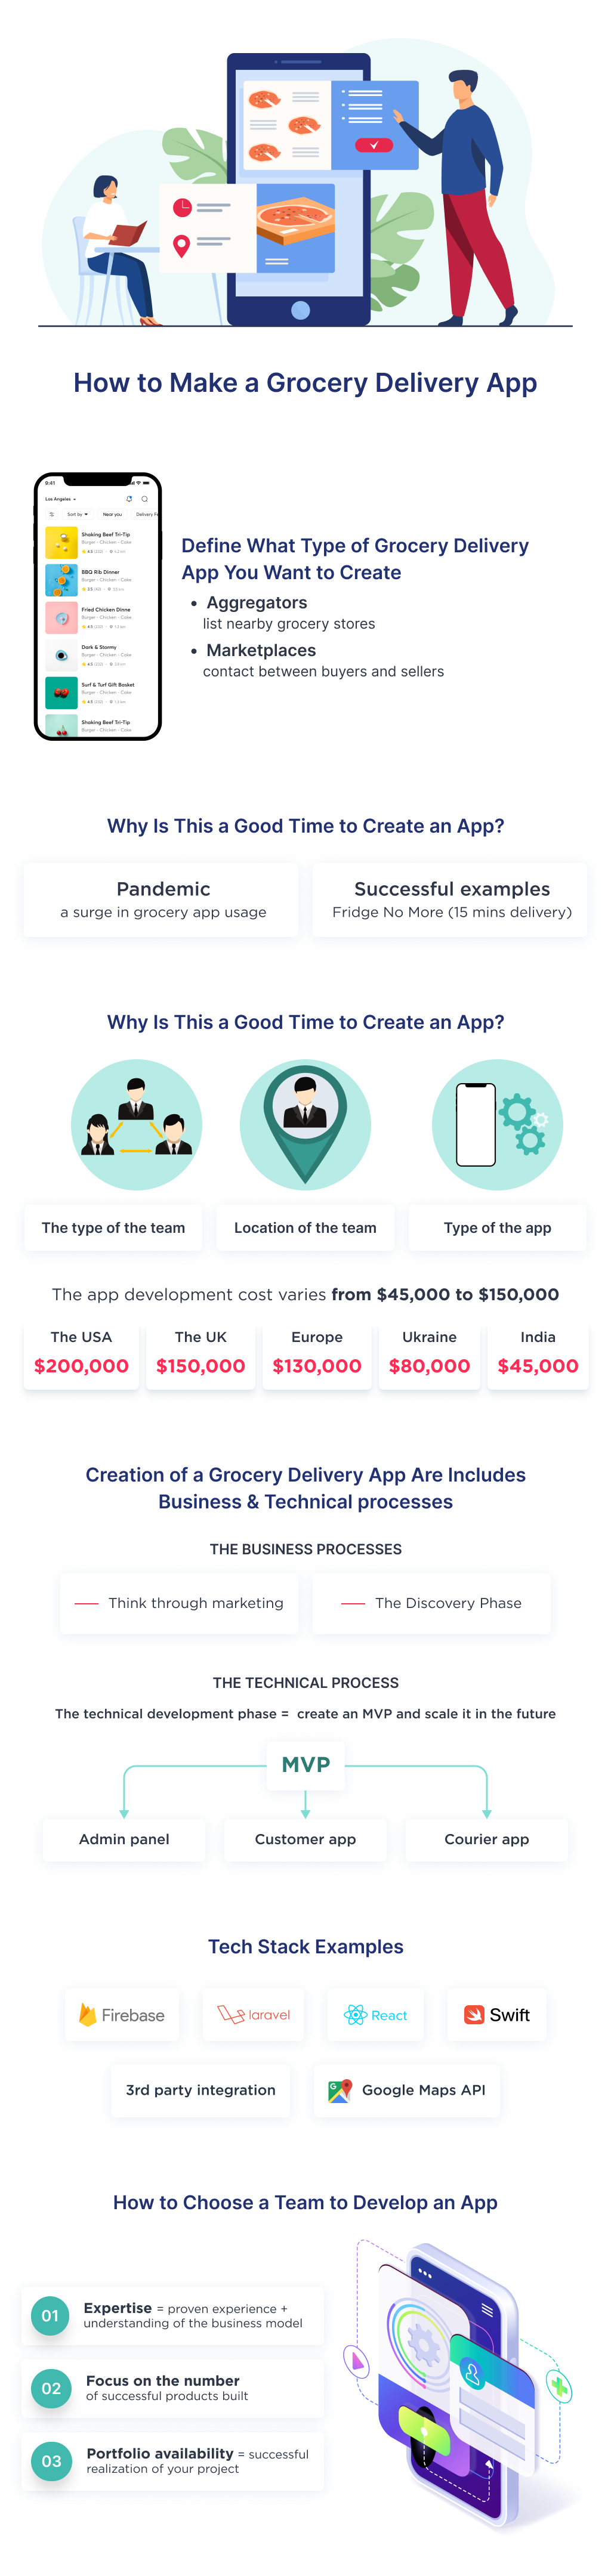 This infographic covers a step-by-step process of grocery app development from scratch